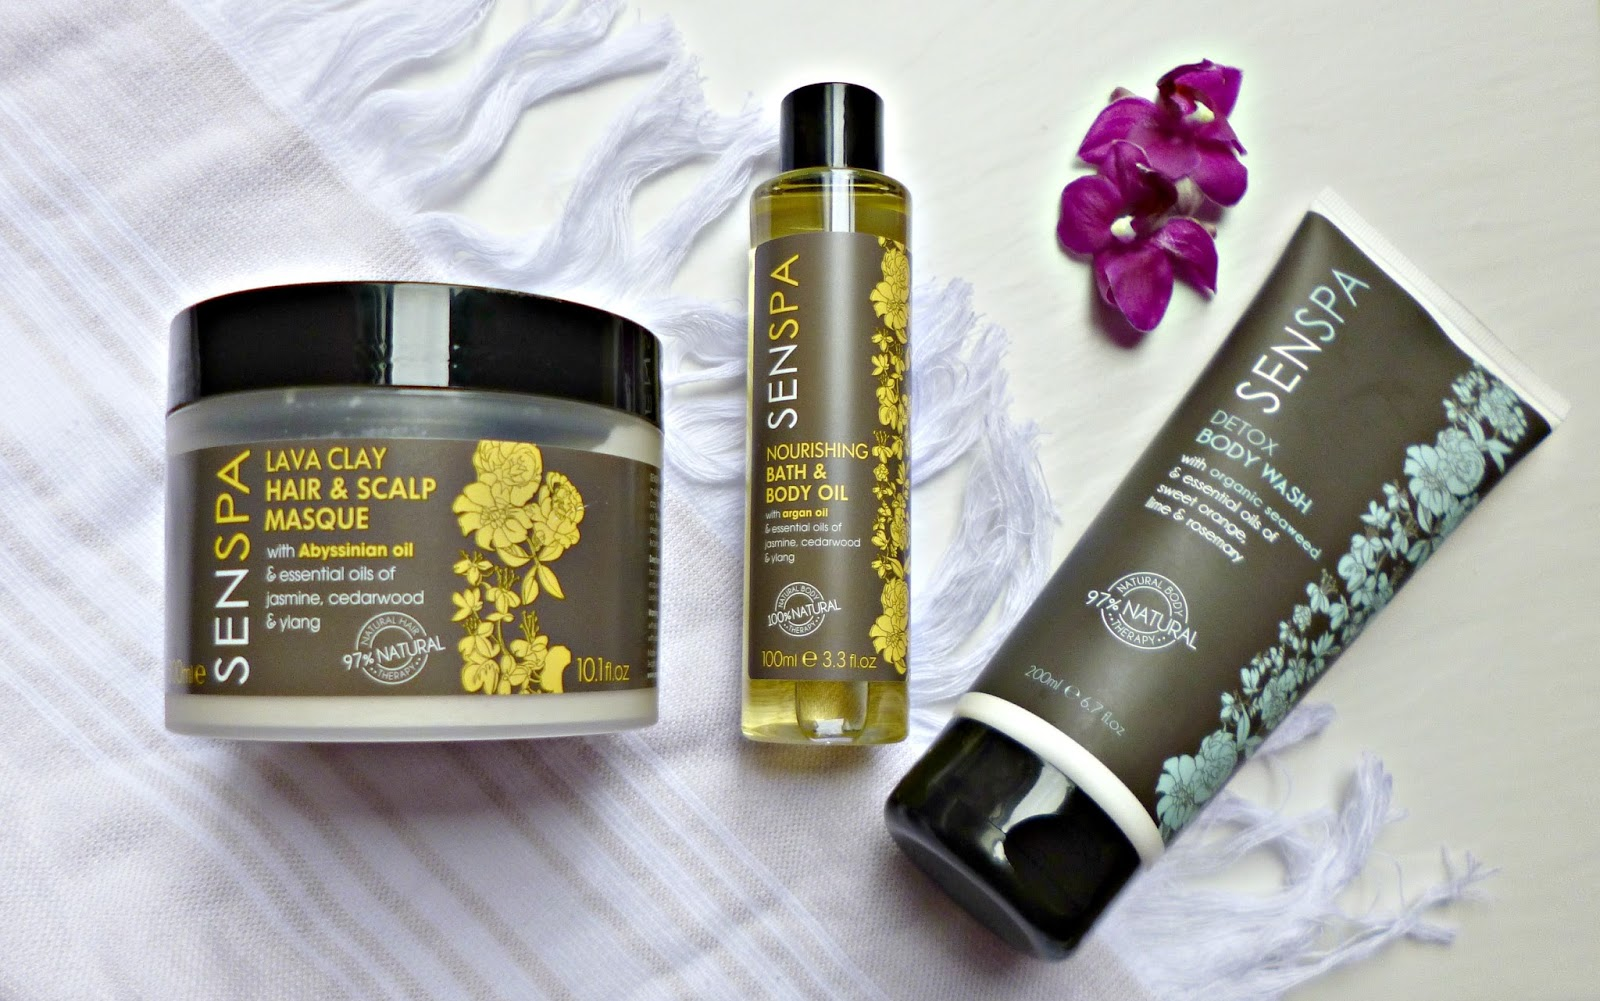 Senspa: Spa products without the Spa prices